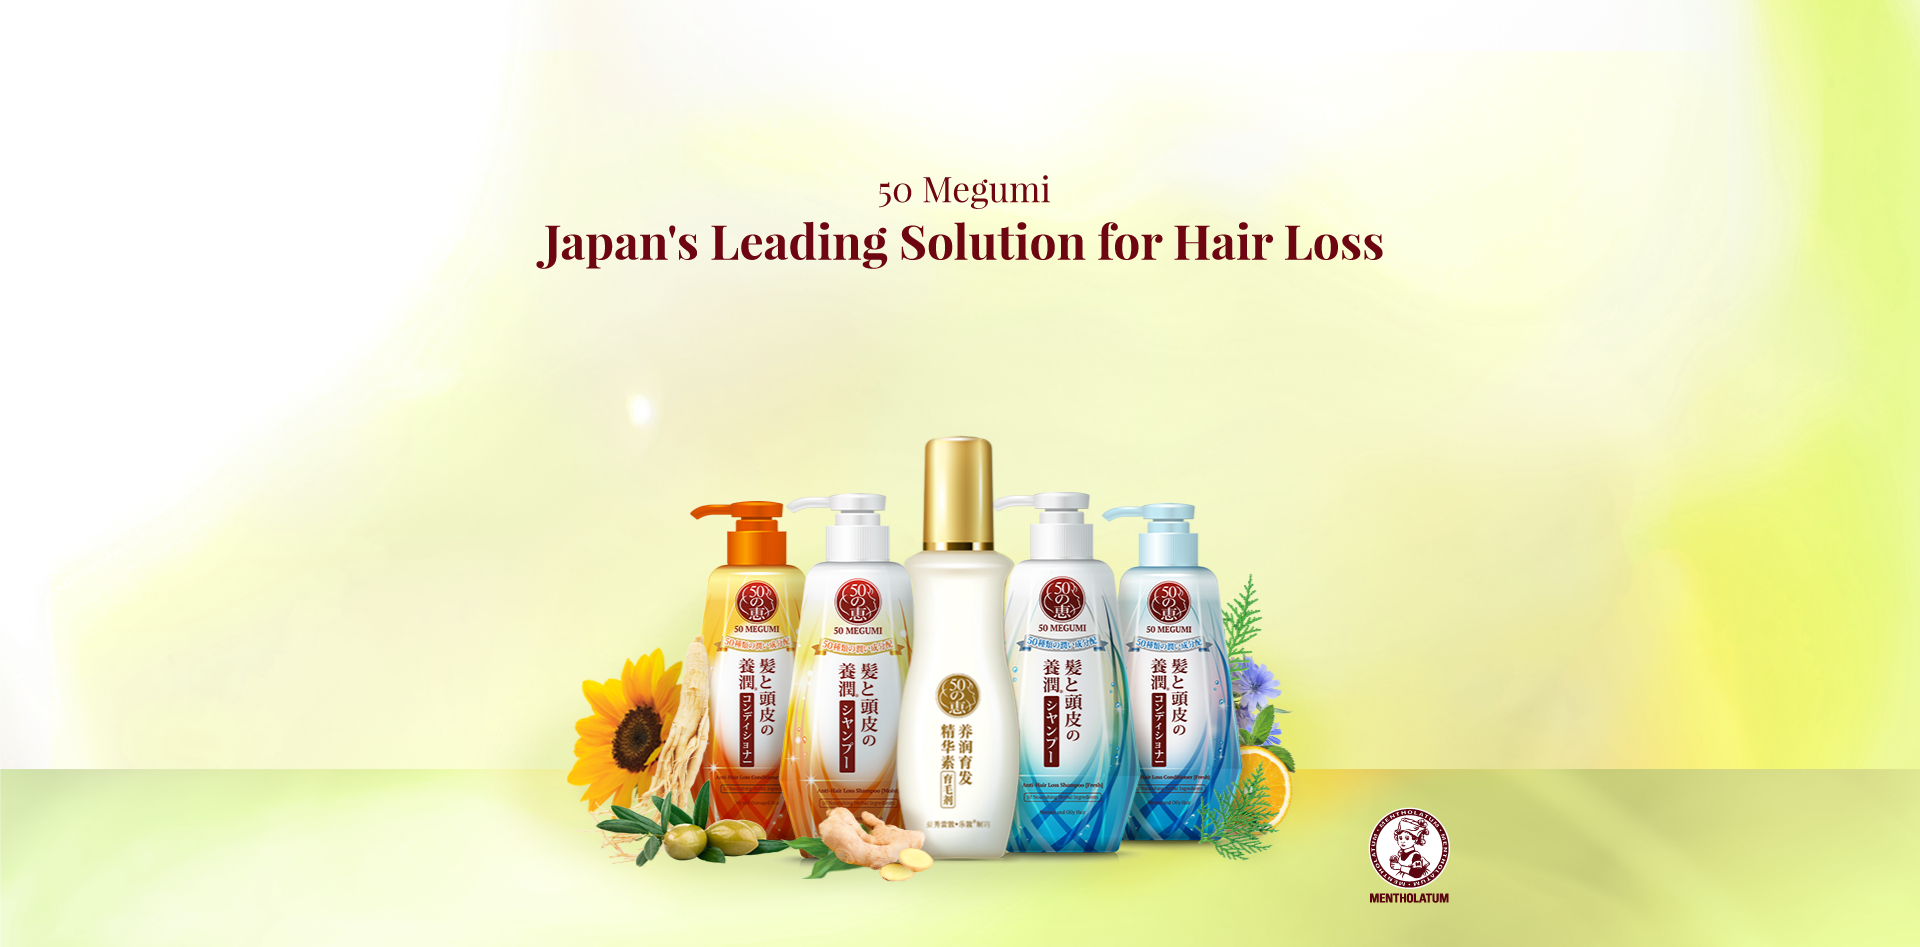 Japan's leading solution for hair loss